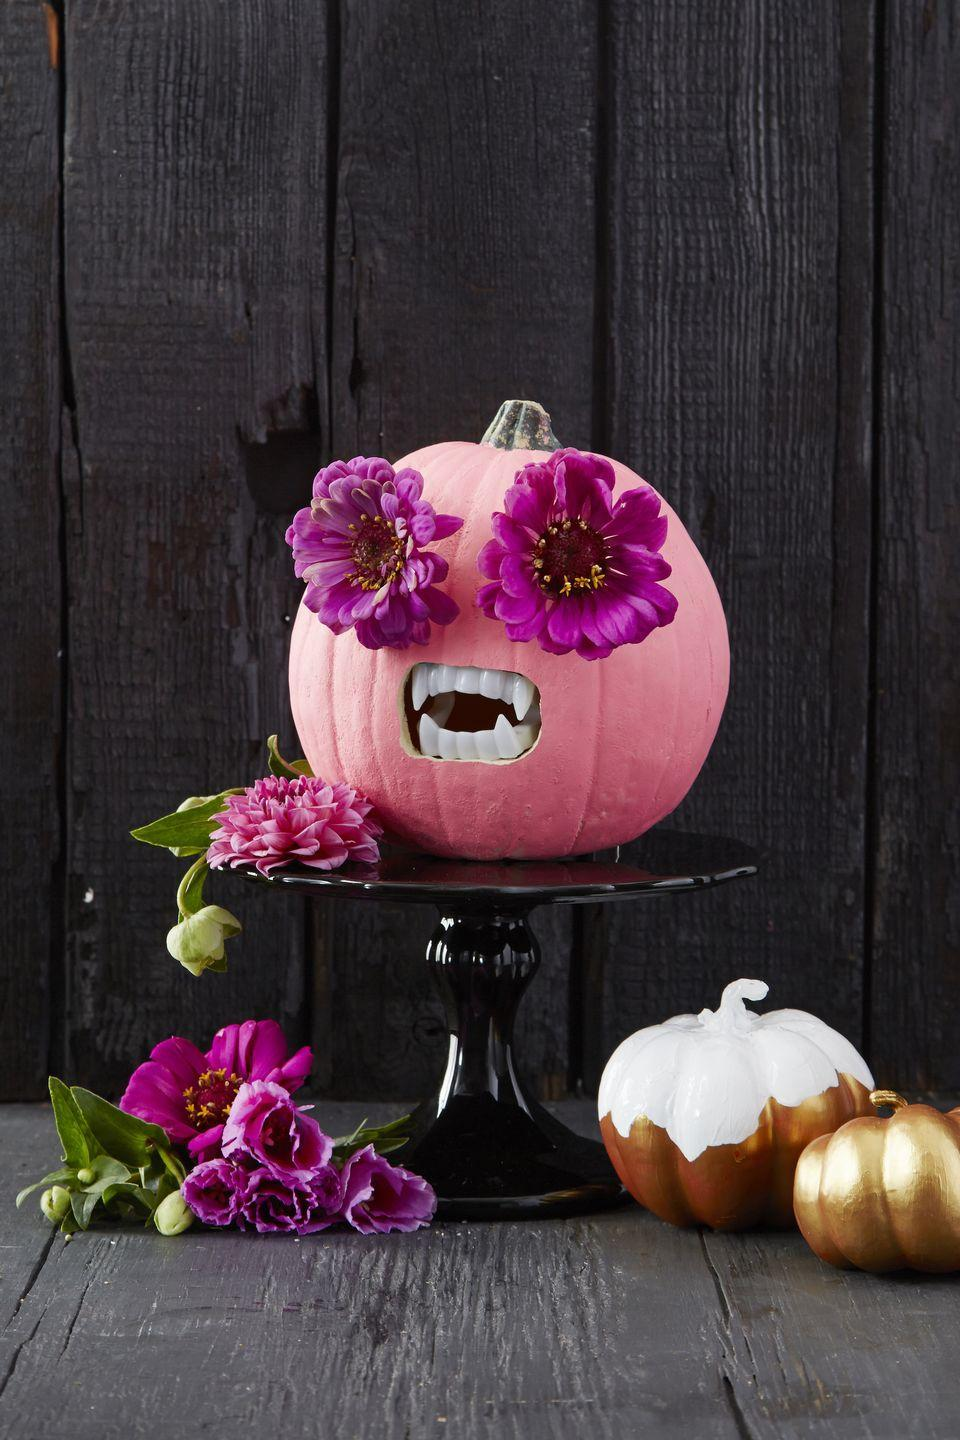 """<p>Use an awl to create eyeholes in a painted pumpkin, then push in the stems of two large blooms. To finish, carve a square for fake fangs.</p><p><a class=""""link rapid-noclick-resp"""" href=""""https://www.amazon.com/Vampire-Plastic-Costume-Accessory-Favors/dp/B003O6F9RQ?tag=syn-yahoo-20&ascsubtag=%5Bartid%7C10055.g.1566%5Bsrc%7Cyahoo-us"""" rel=""""nofollow noopener"""" target=""""_blank"""" data-ylk=""""slk:SHOP PLASTIC FANGS"""">SHOP PLASTIC FANGS</a></p>"""